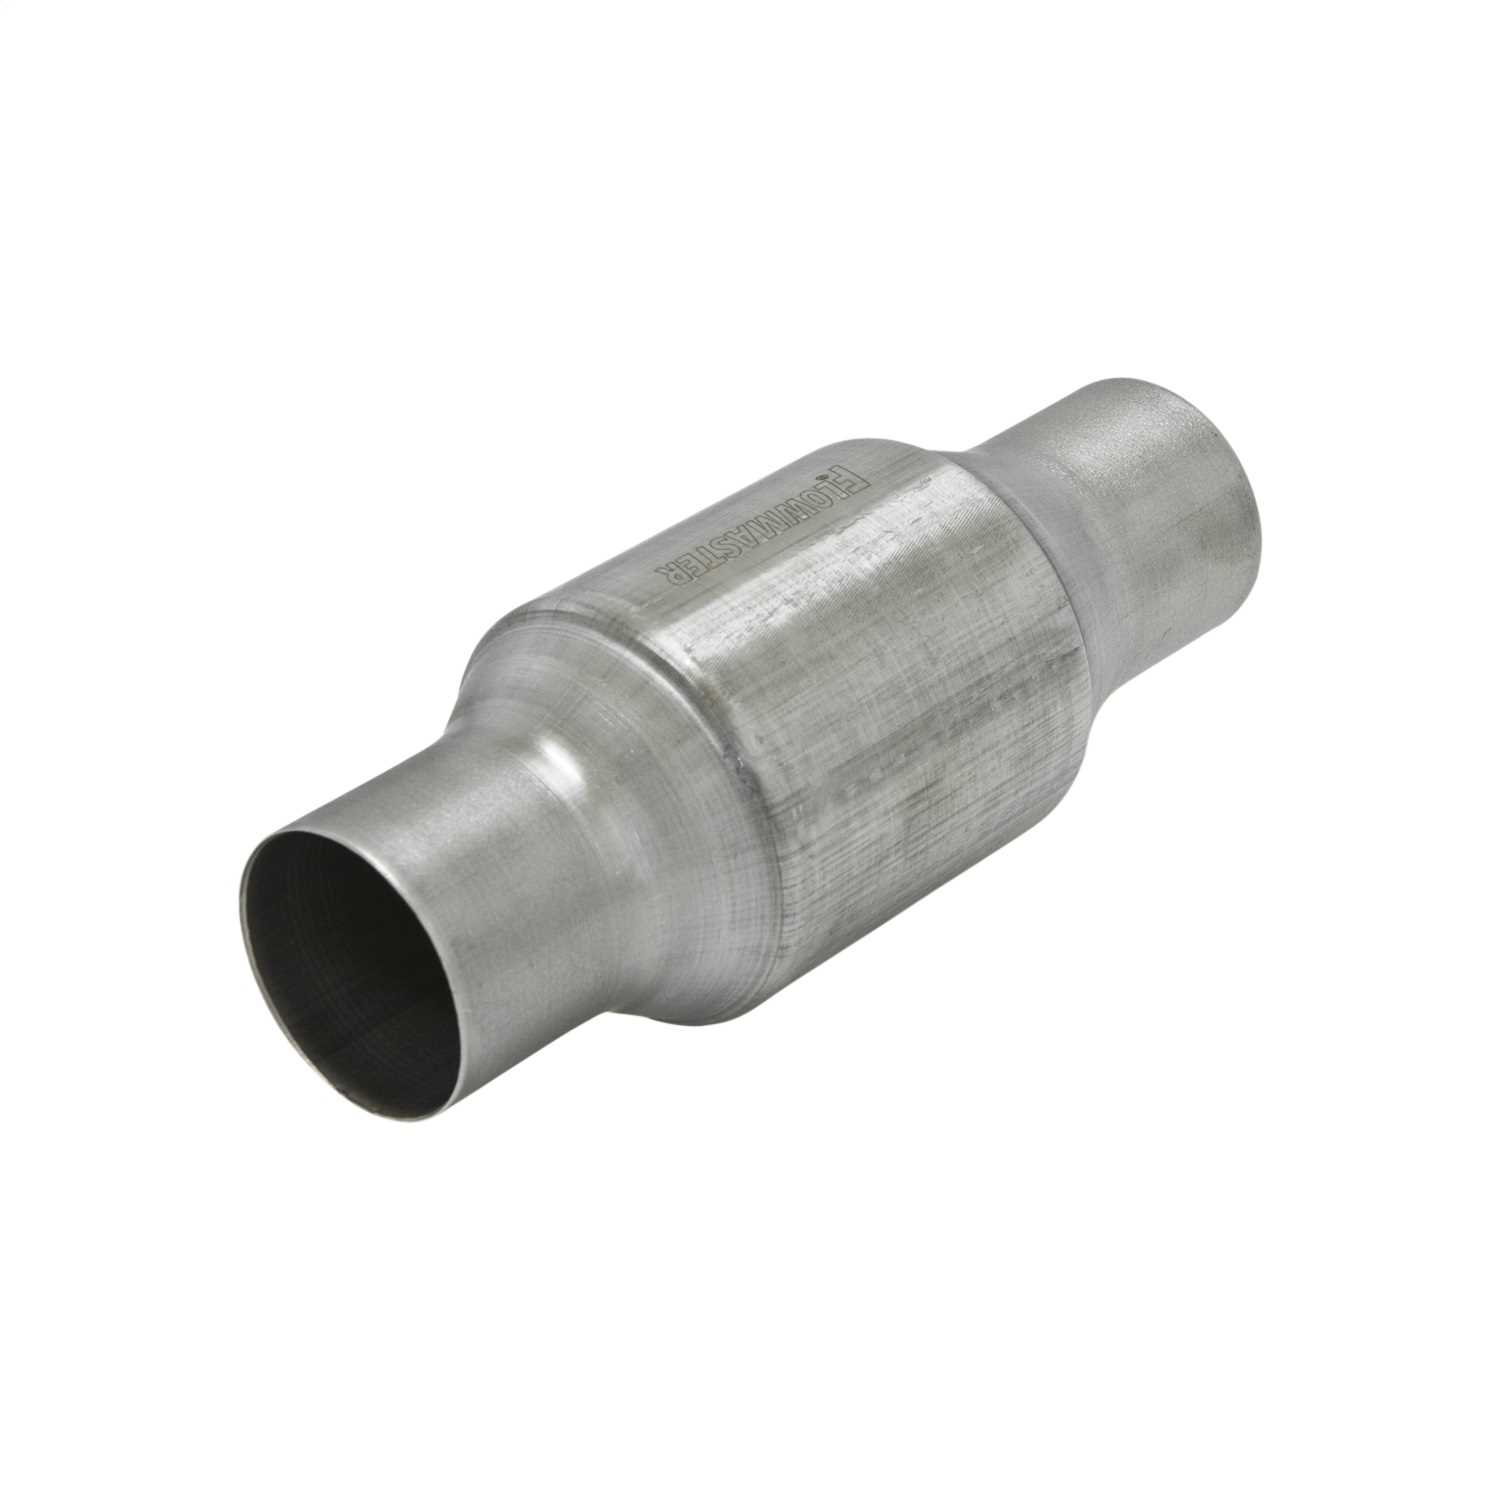 2230124 Flowmaster 49 State Catalytic Converters Universal Catalytic Converter